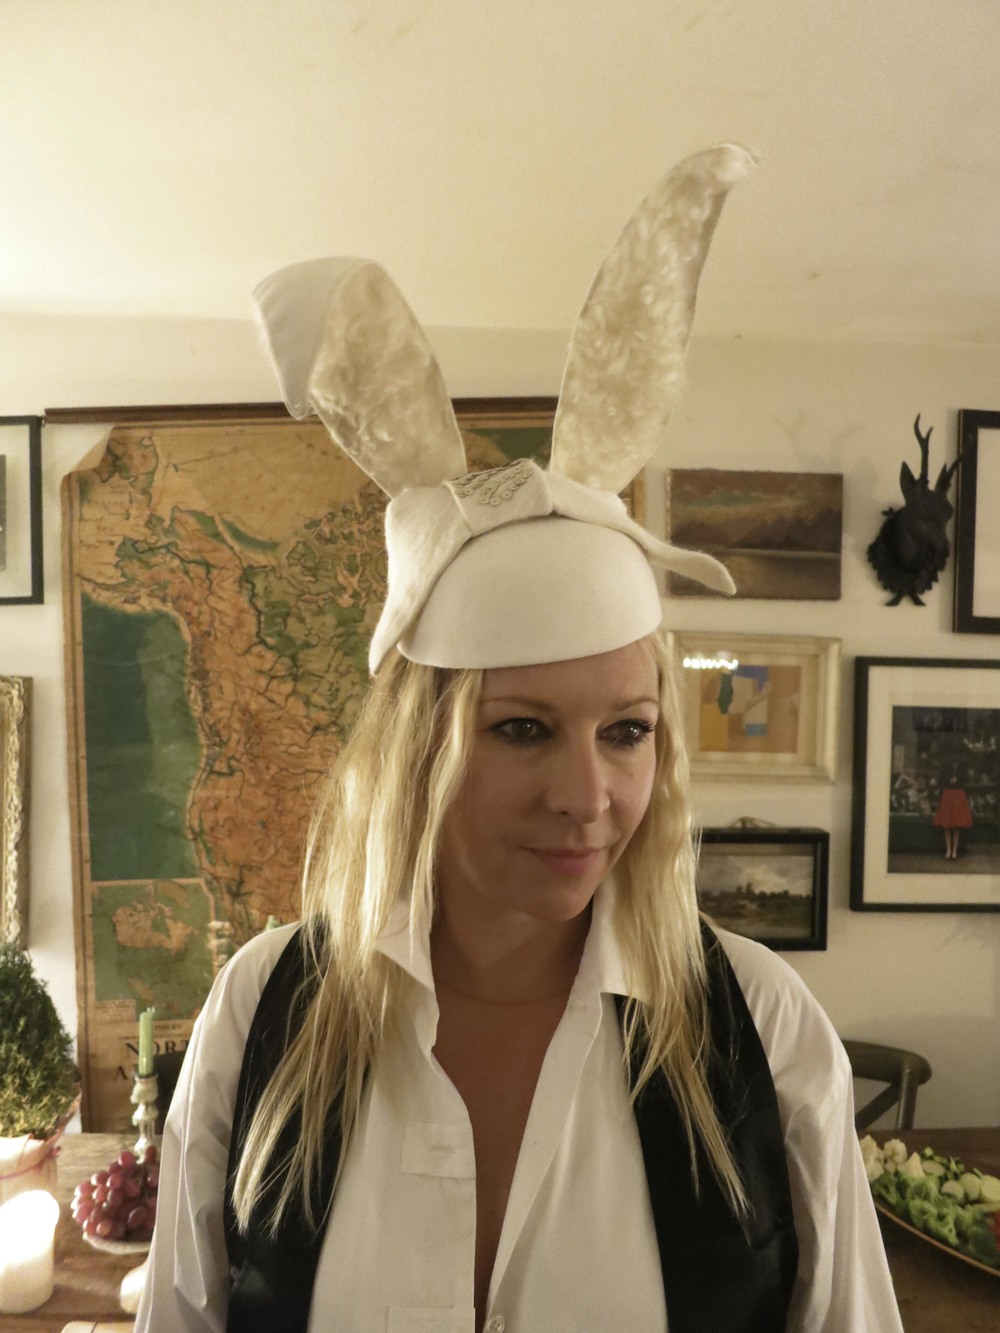 The gorgeous Victoria Sullivan in Bunny Ears Hat